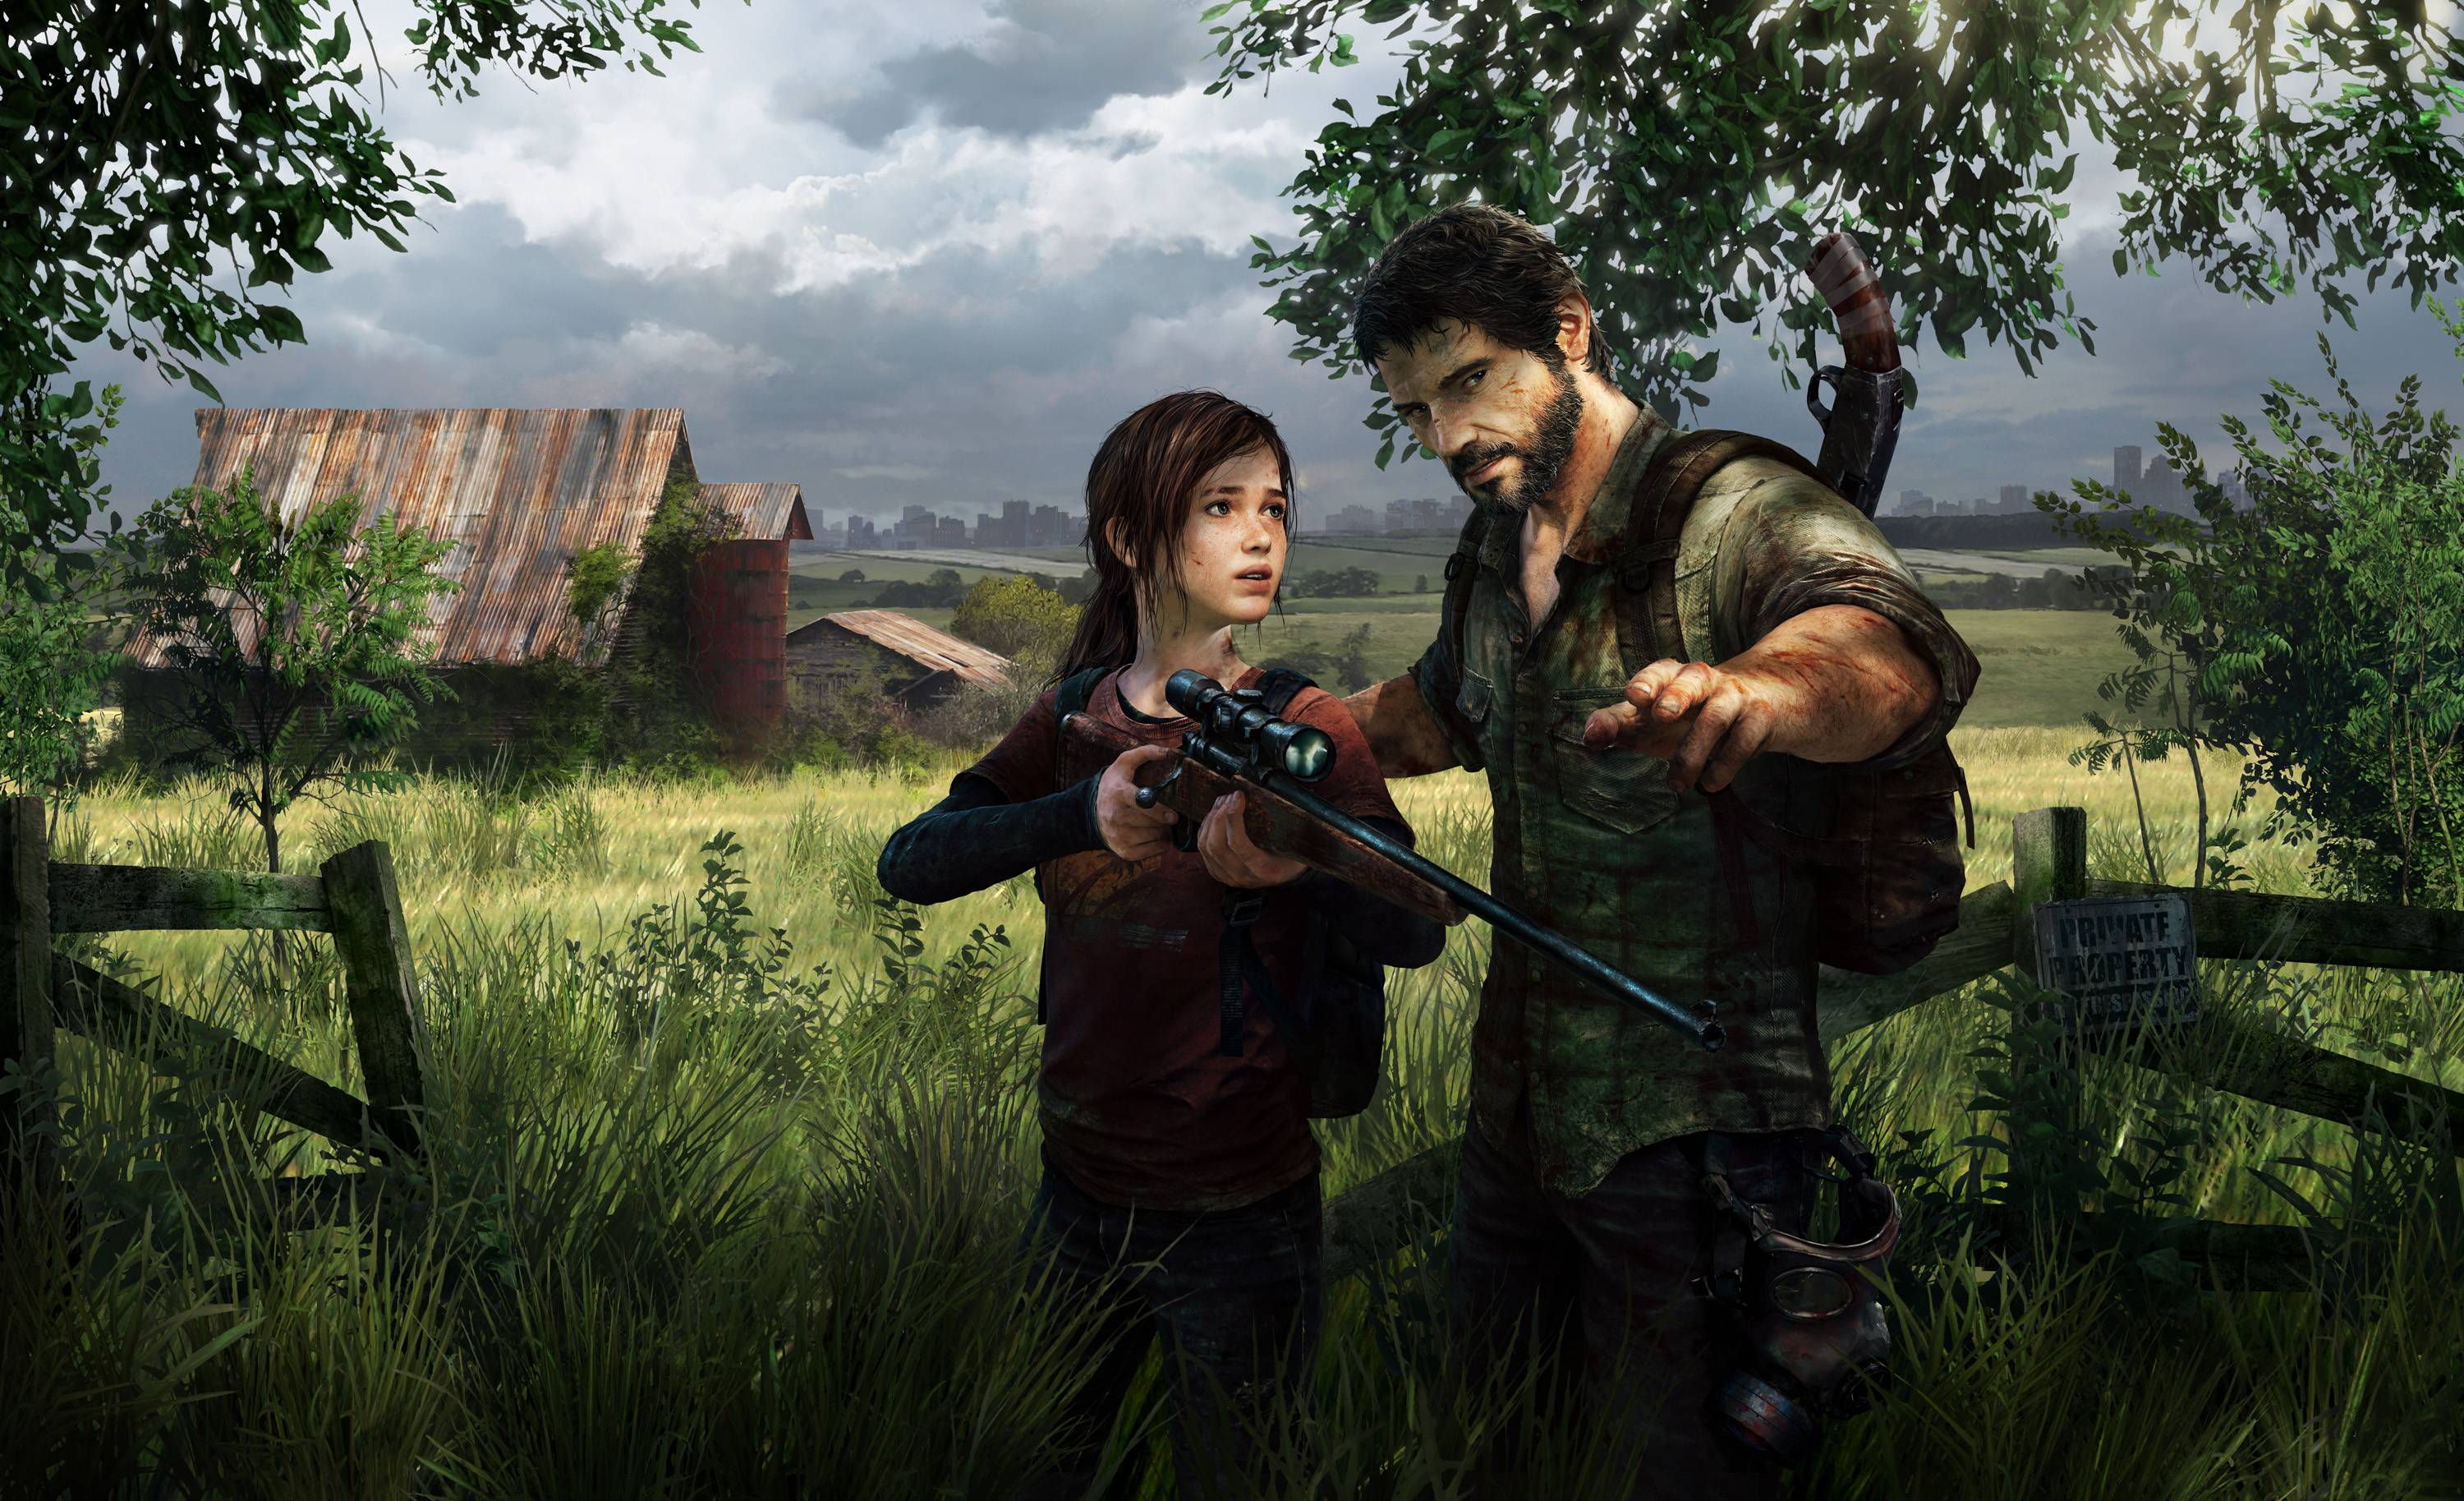 The Last Of Us Wallpaper 6 Wallpapersbq